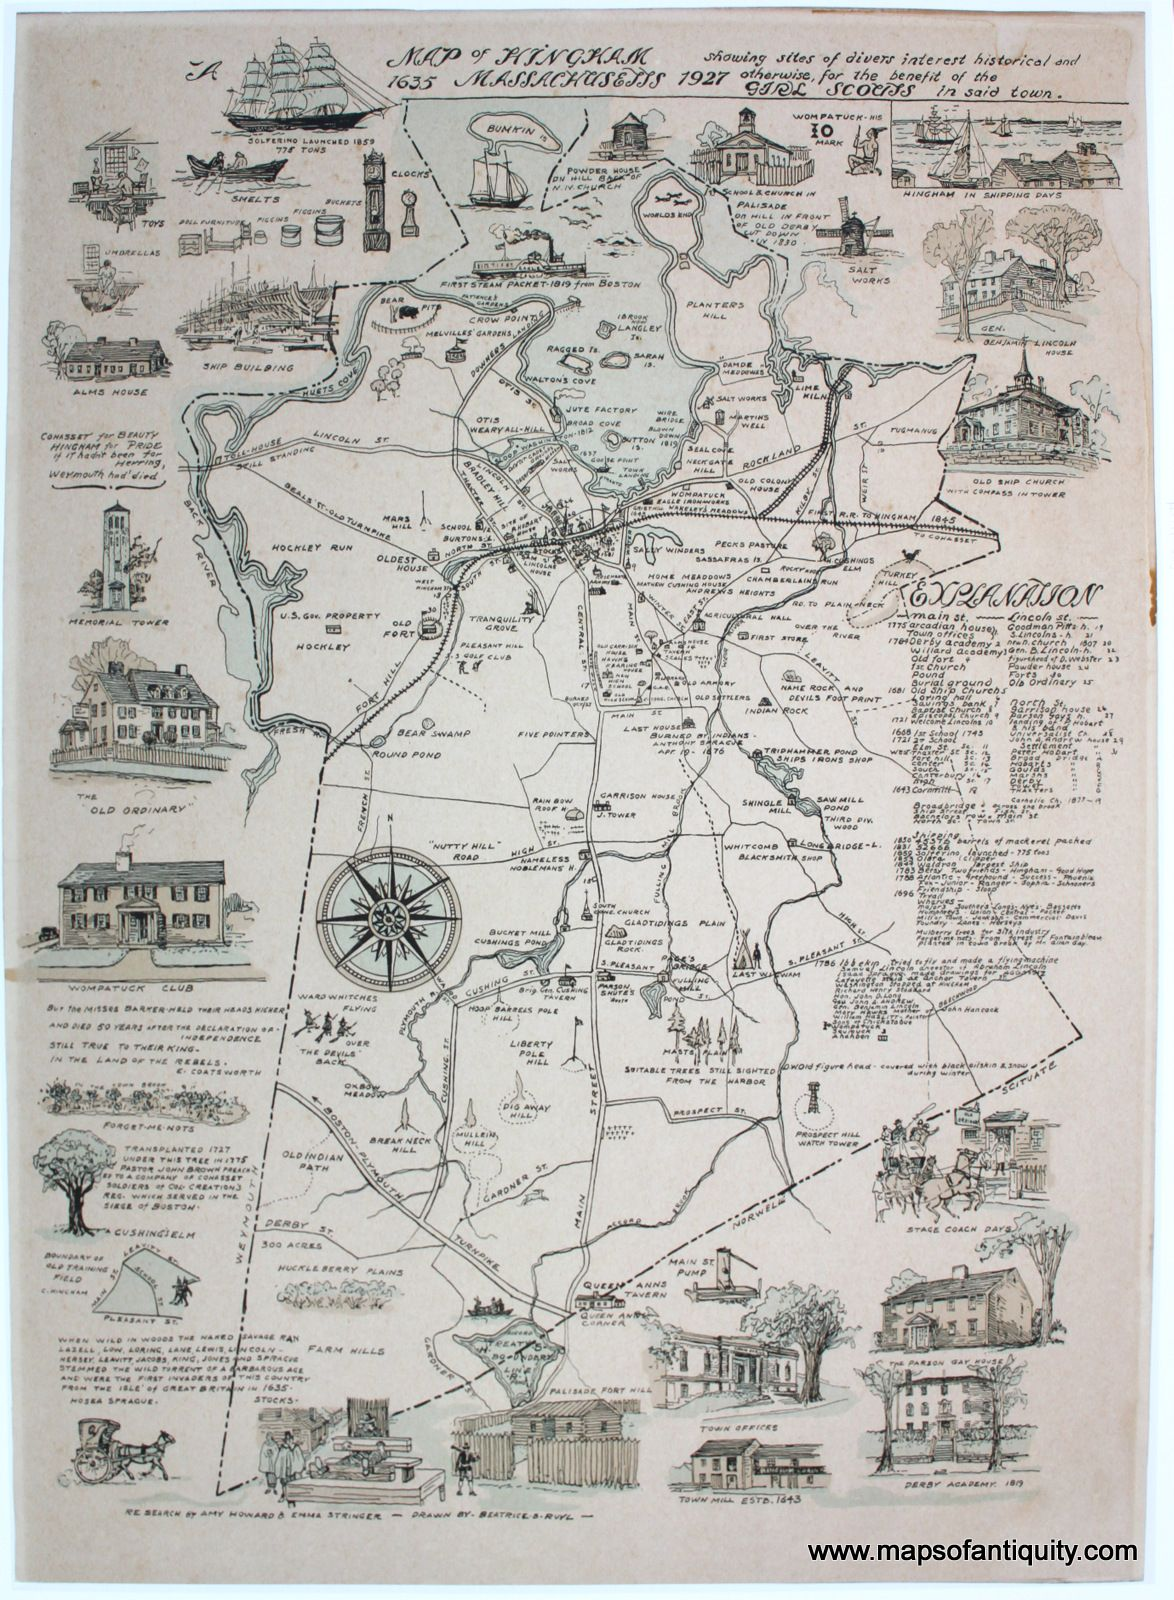 Map Of Hingham Machusetts 1635 1927 Antique Maps And Charts Original Vintage Rare Historical Prints Reproductions